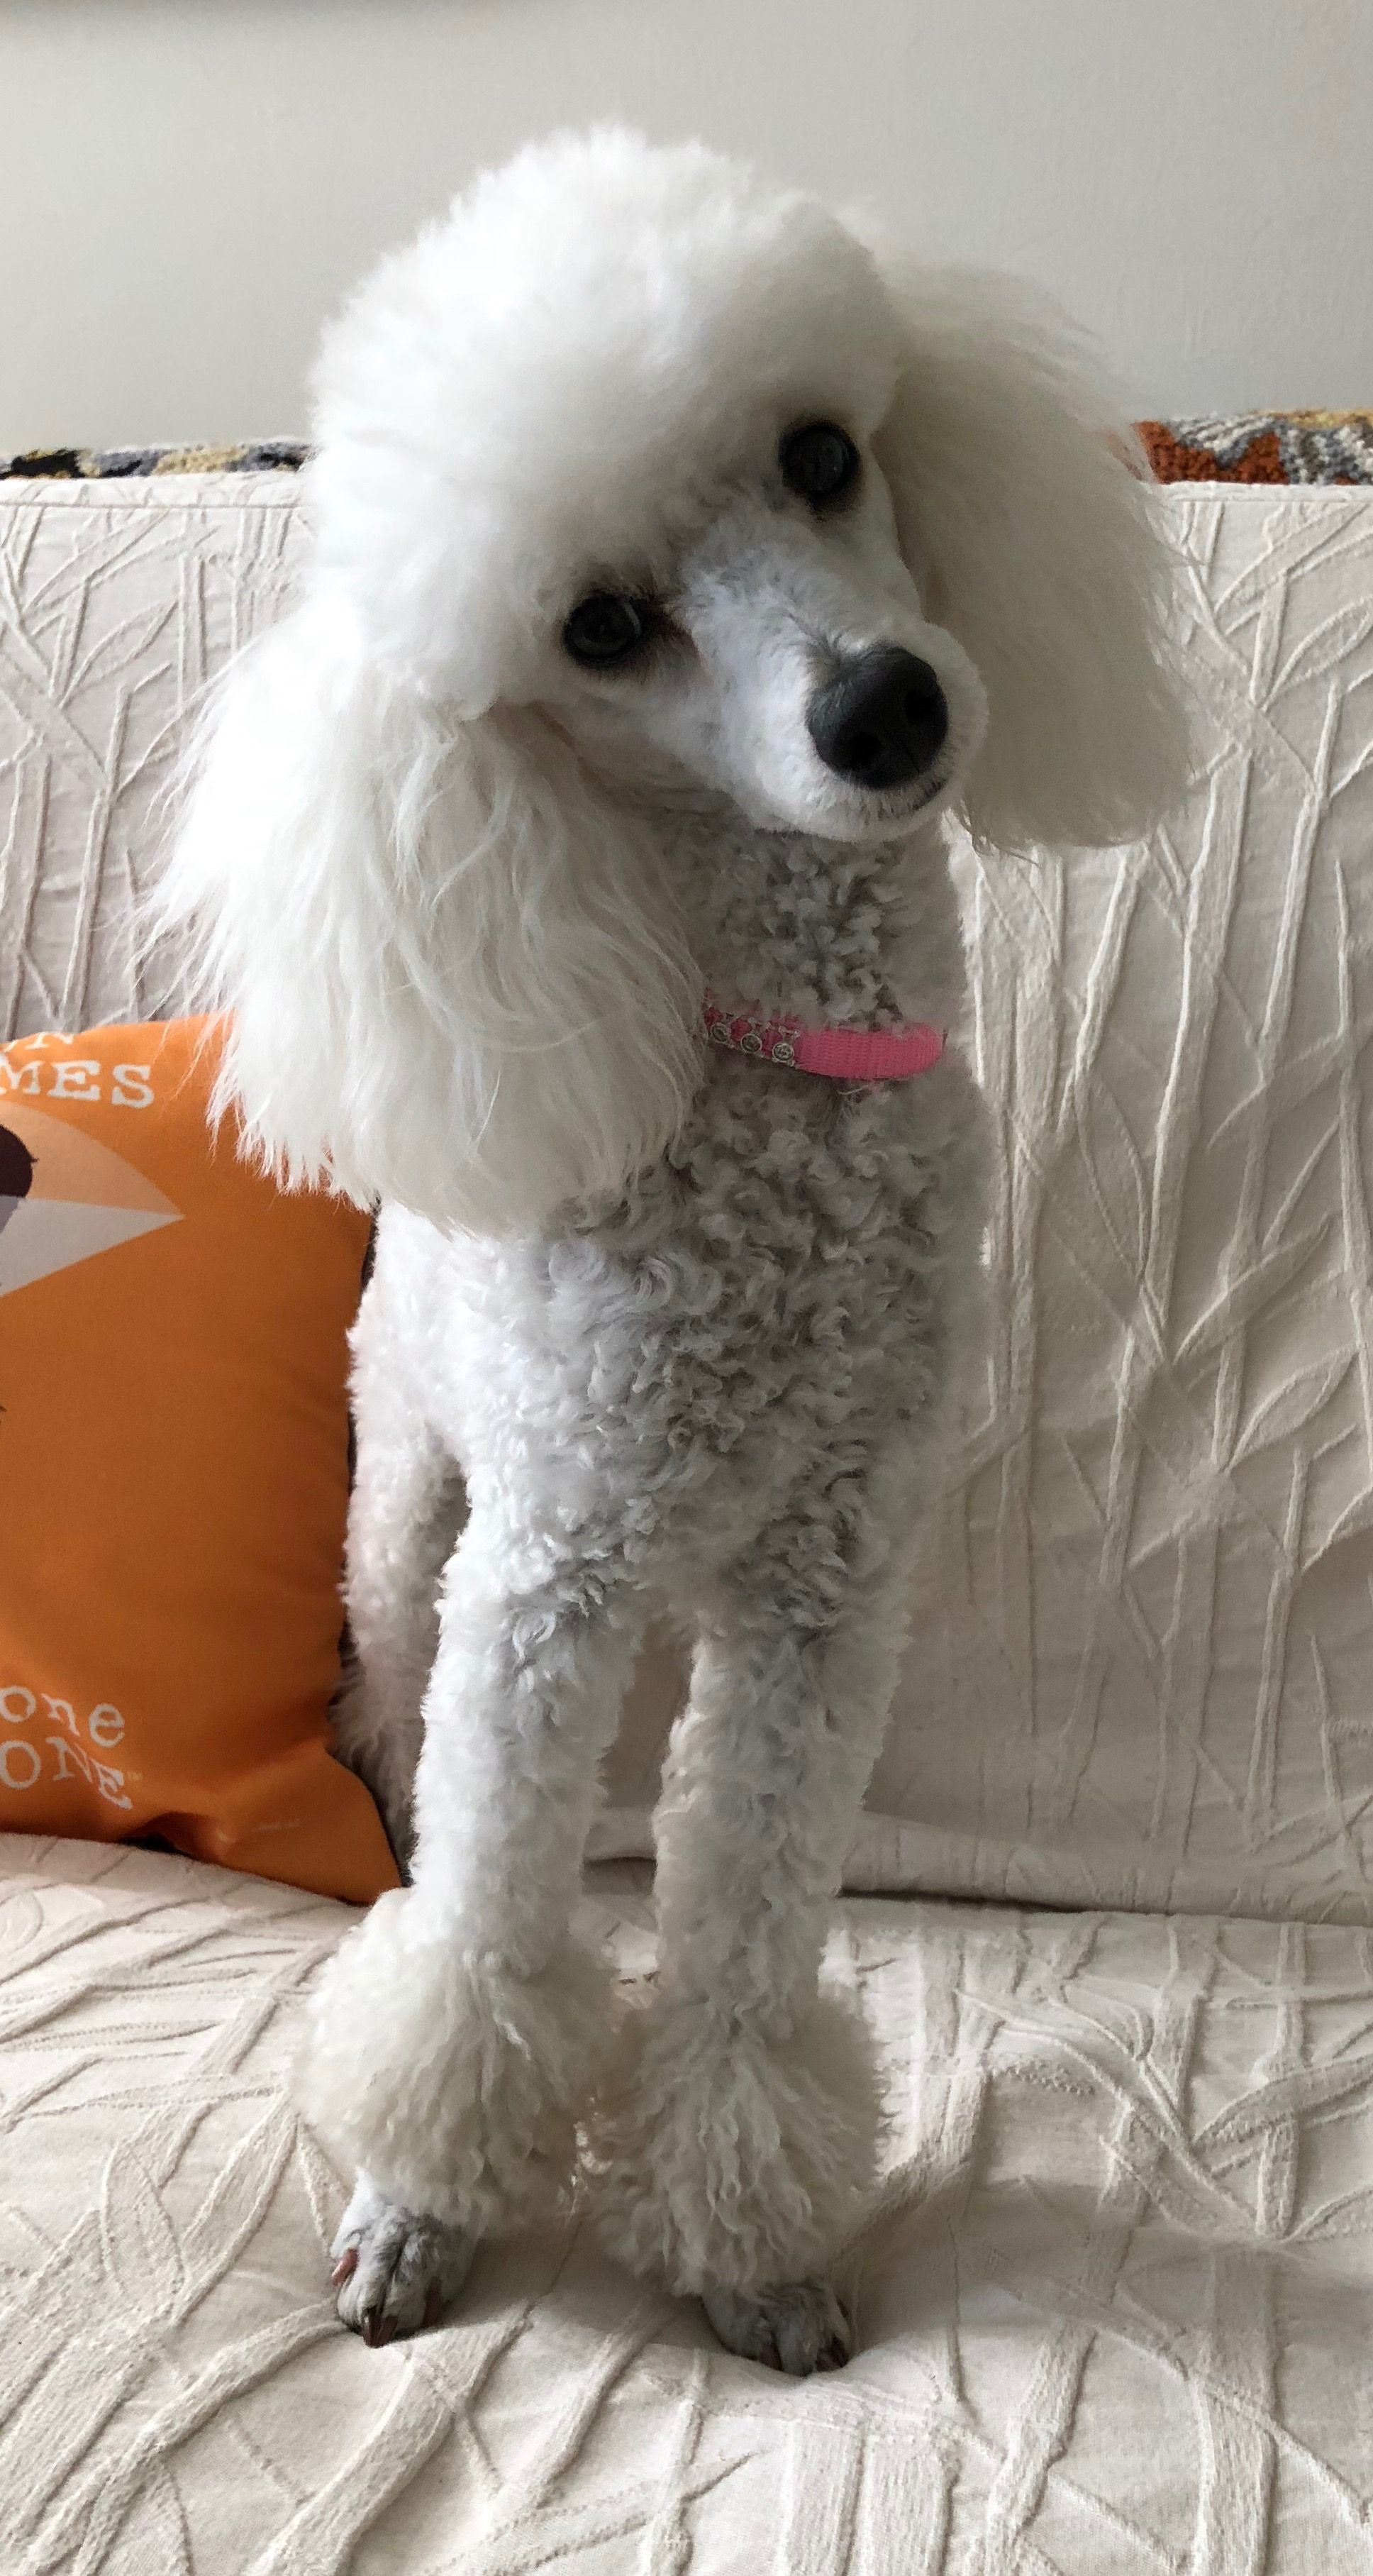 Would Anyone Like To Take Me For A Walk Jolie May 2 2018